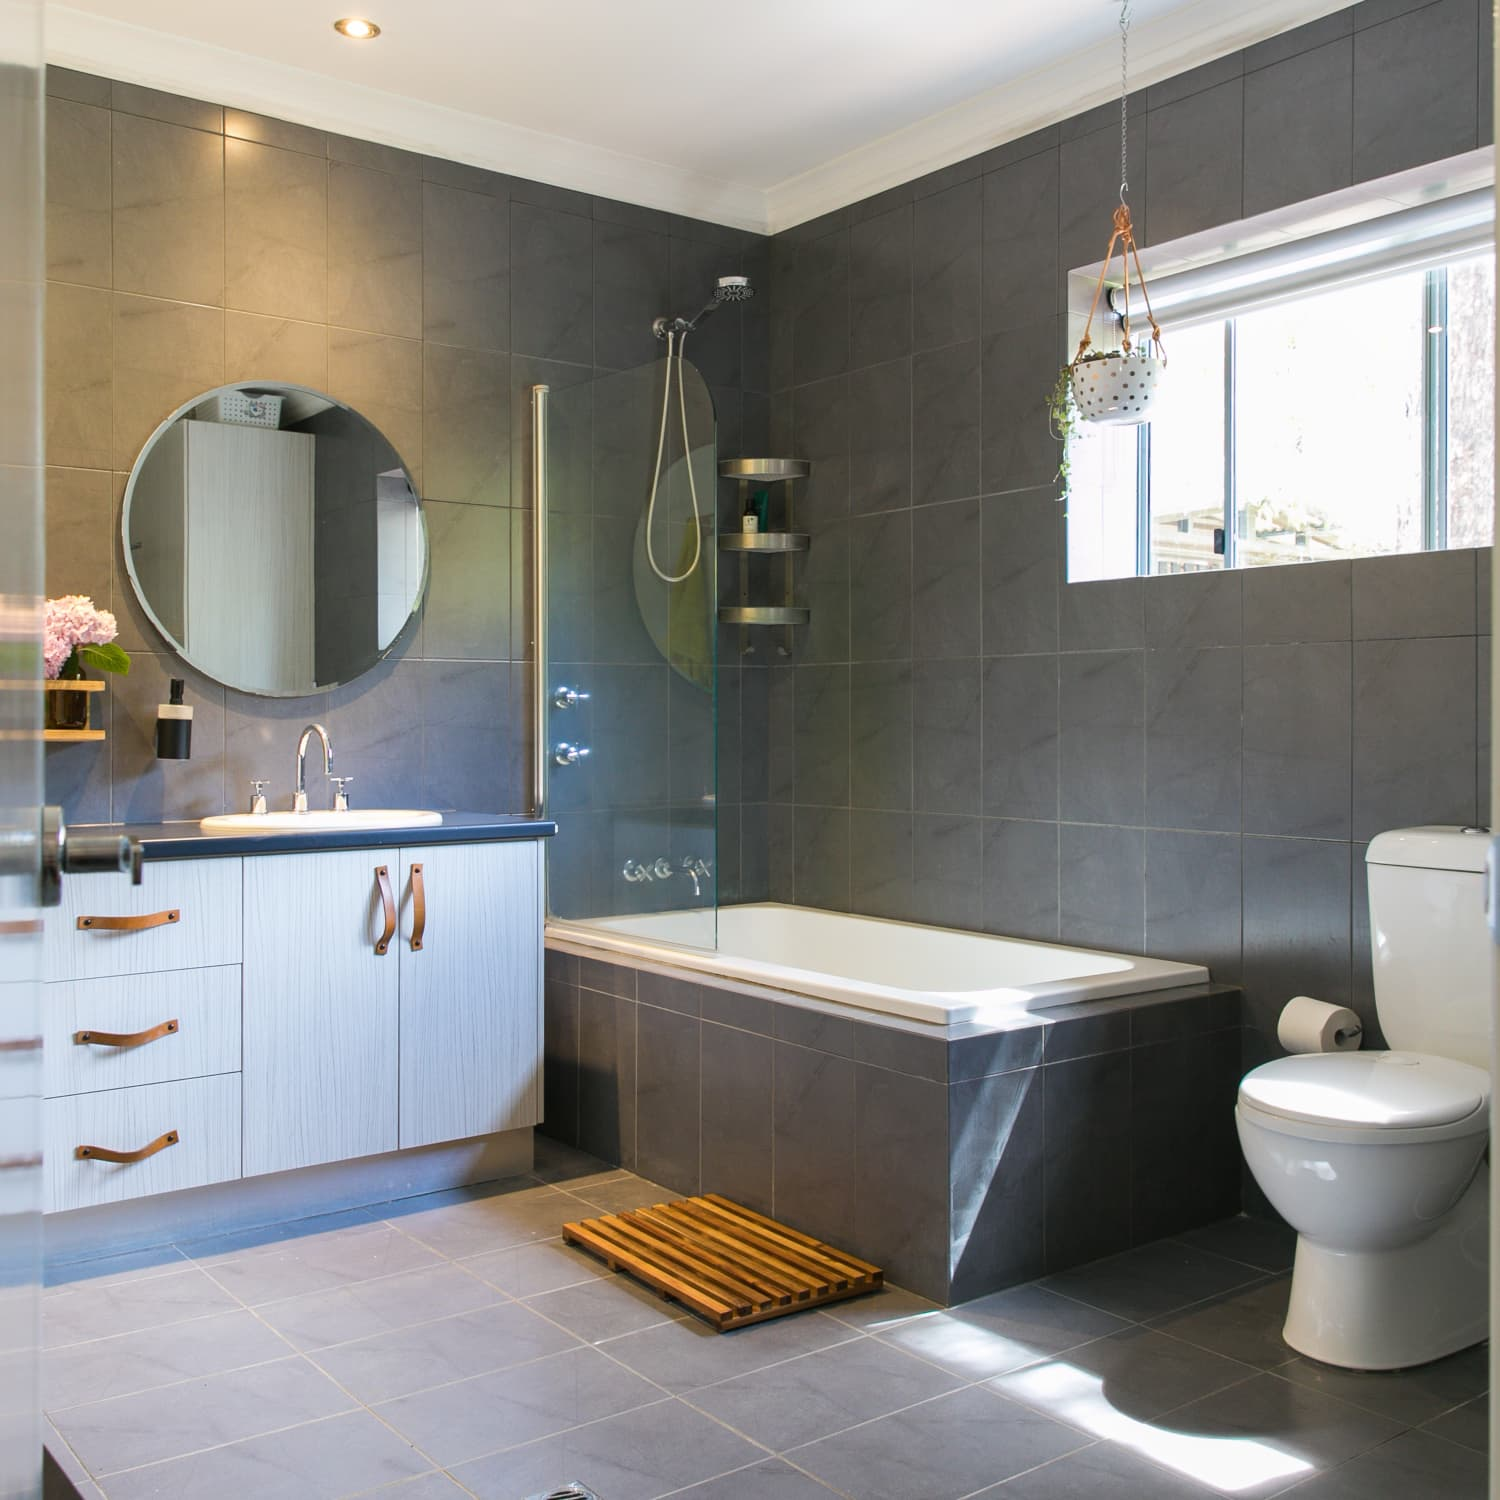 Matching Tile Floors And Walls In The Bathroom Apartment Therapy